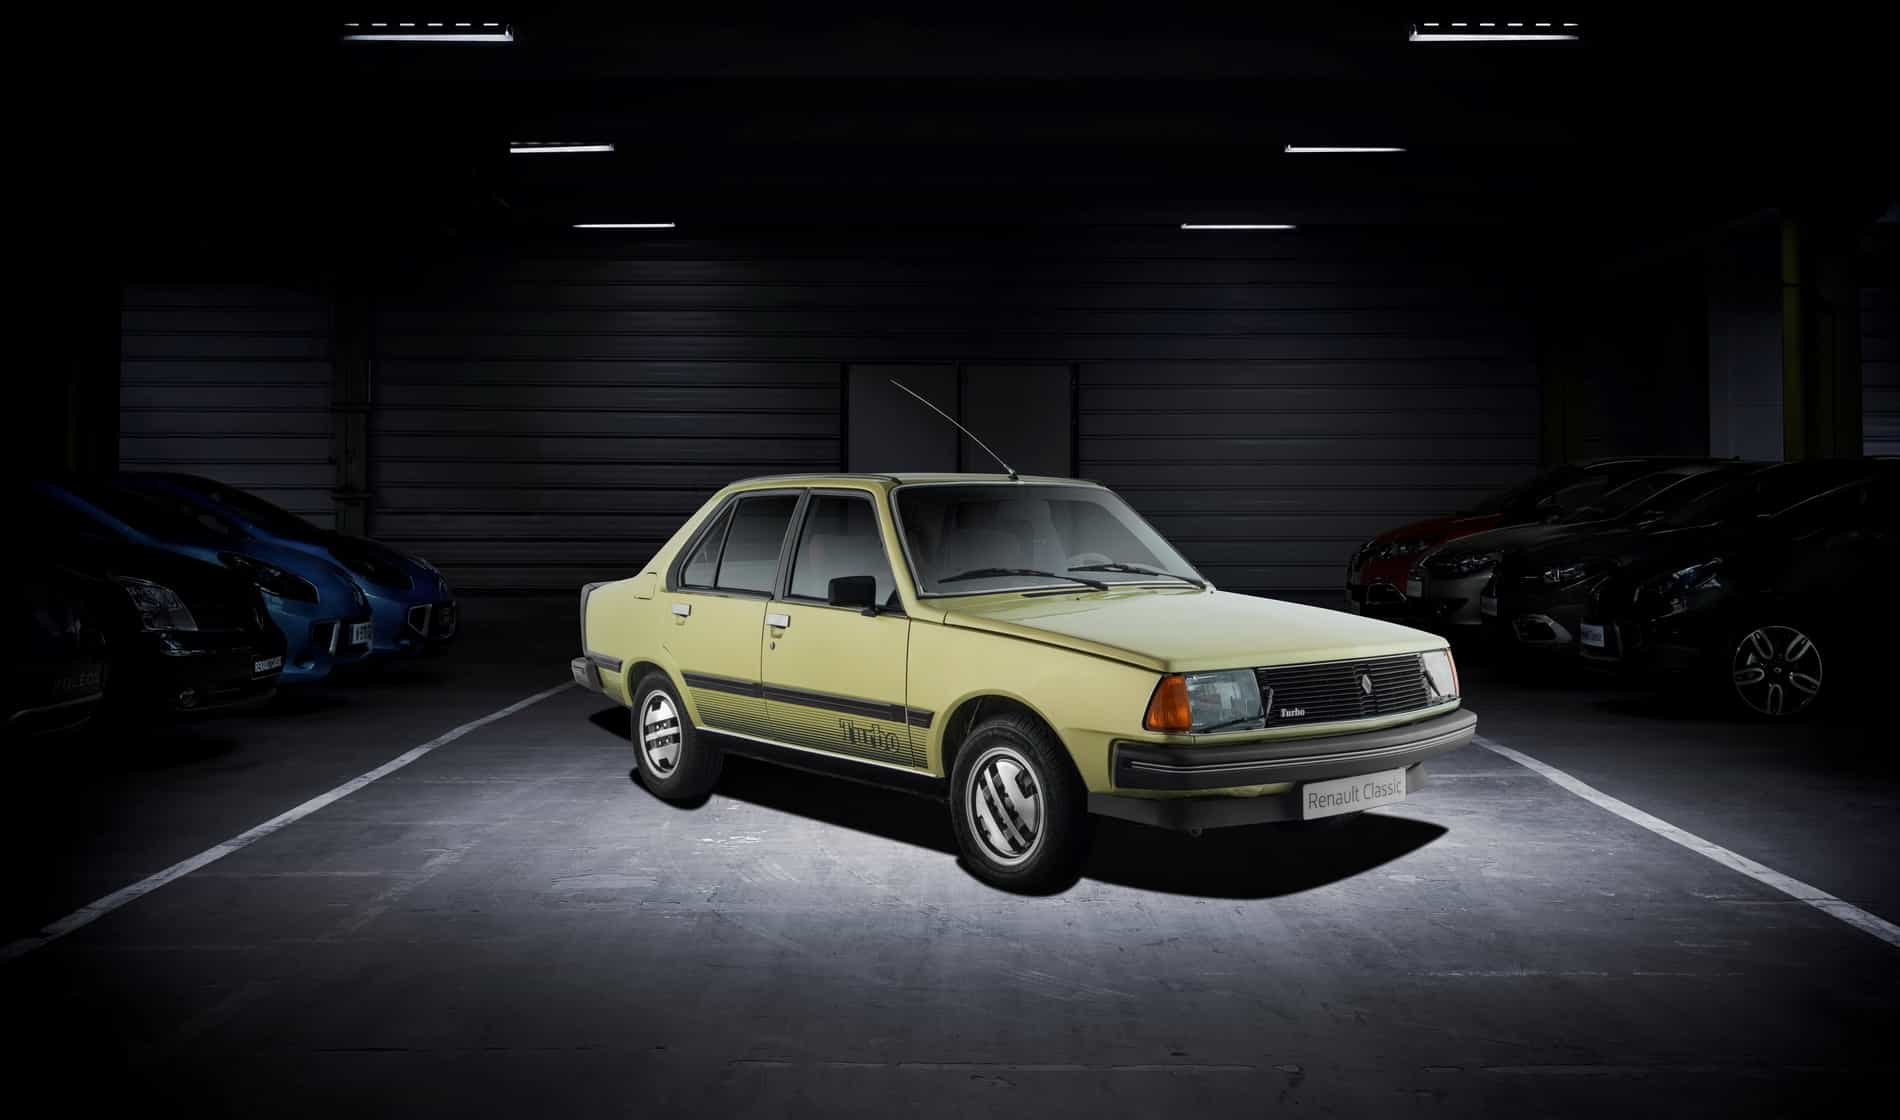 1980 – Renault 18 Turbo